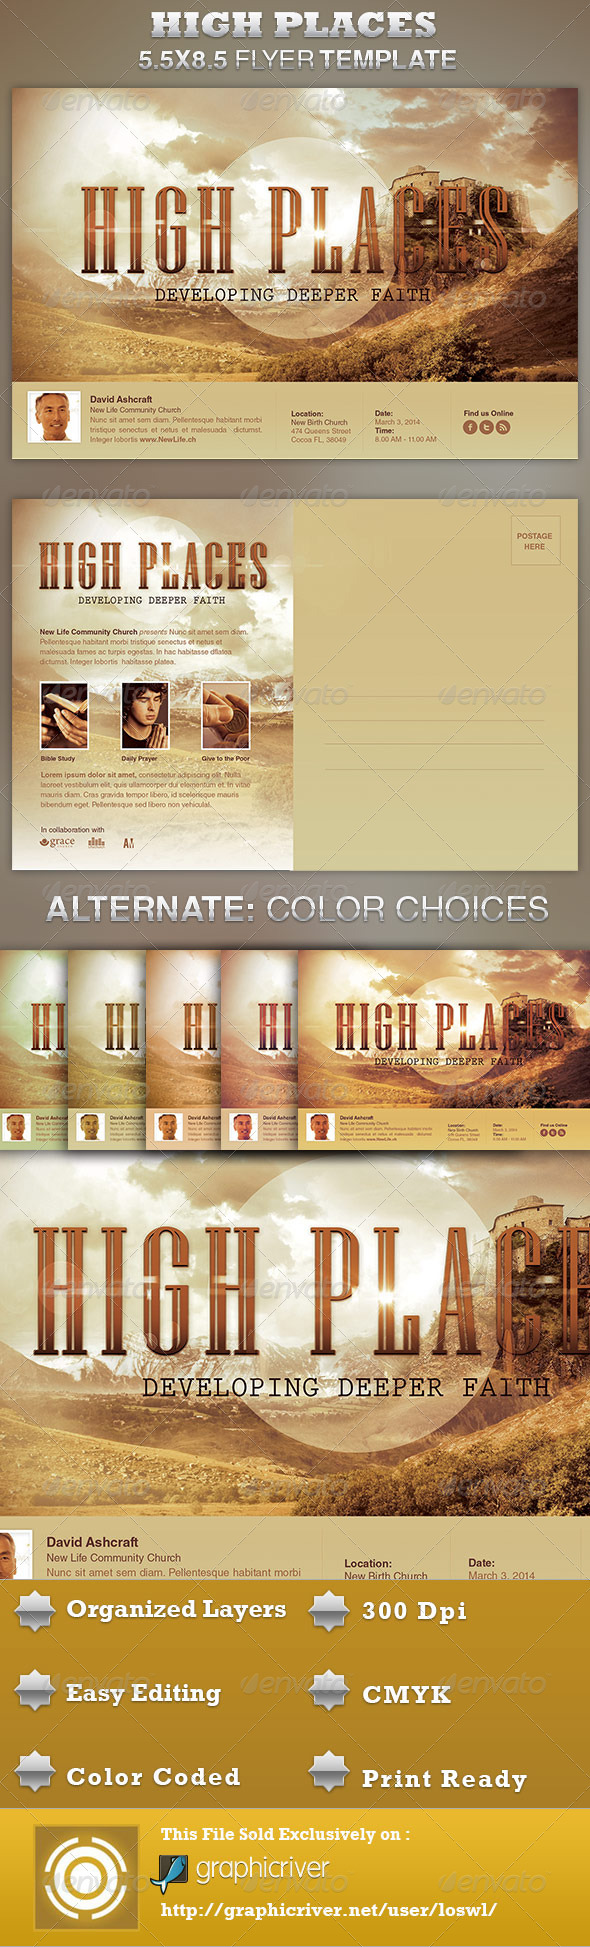 High Places Church Flyer Template - Church Flyers